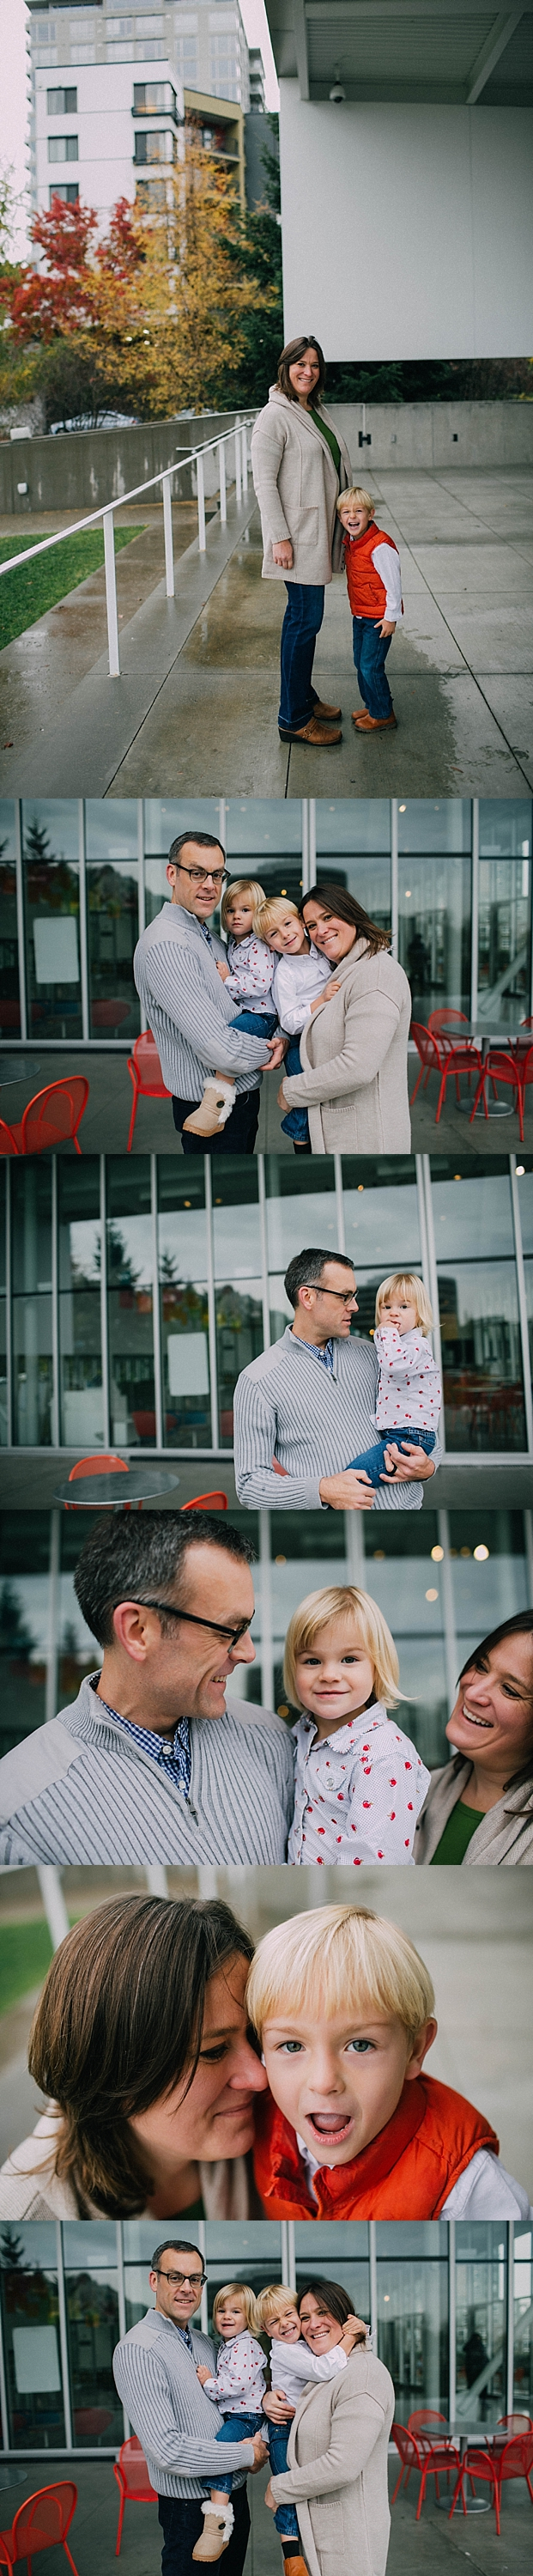 seattle lifestyle family session olympic sculpture park-2.jpg